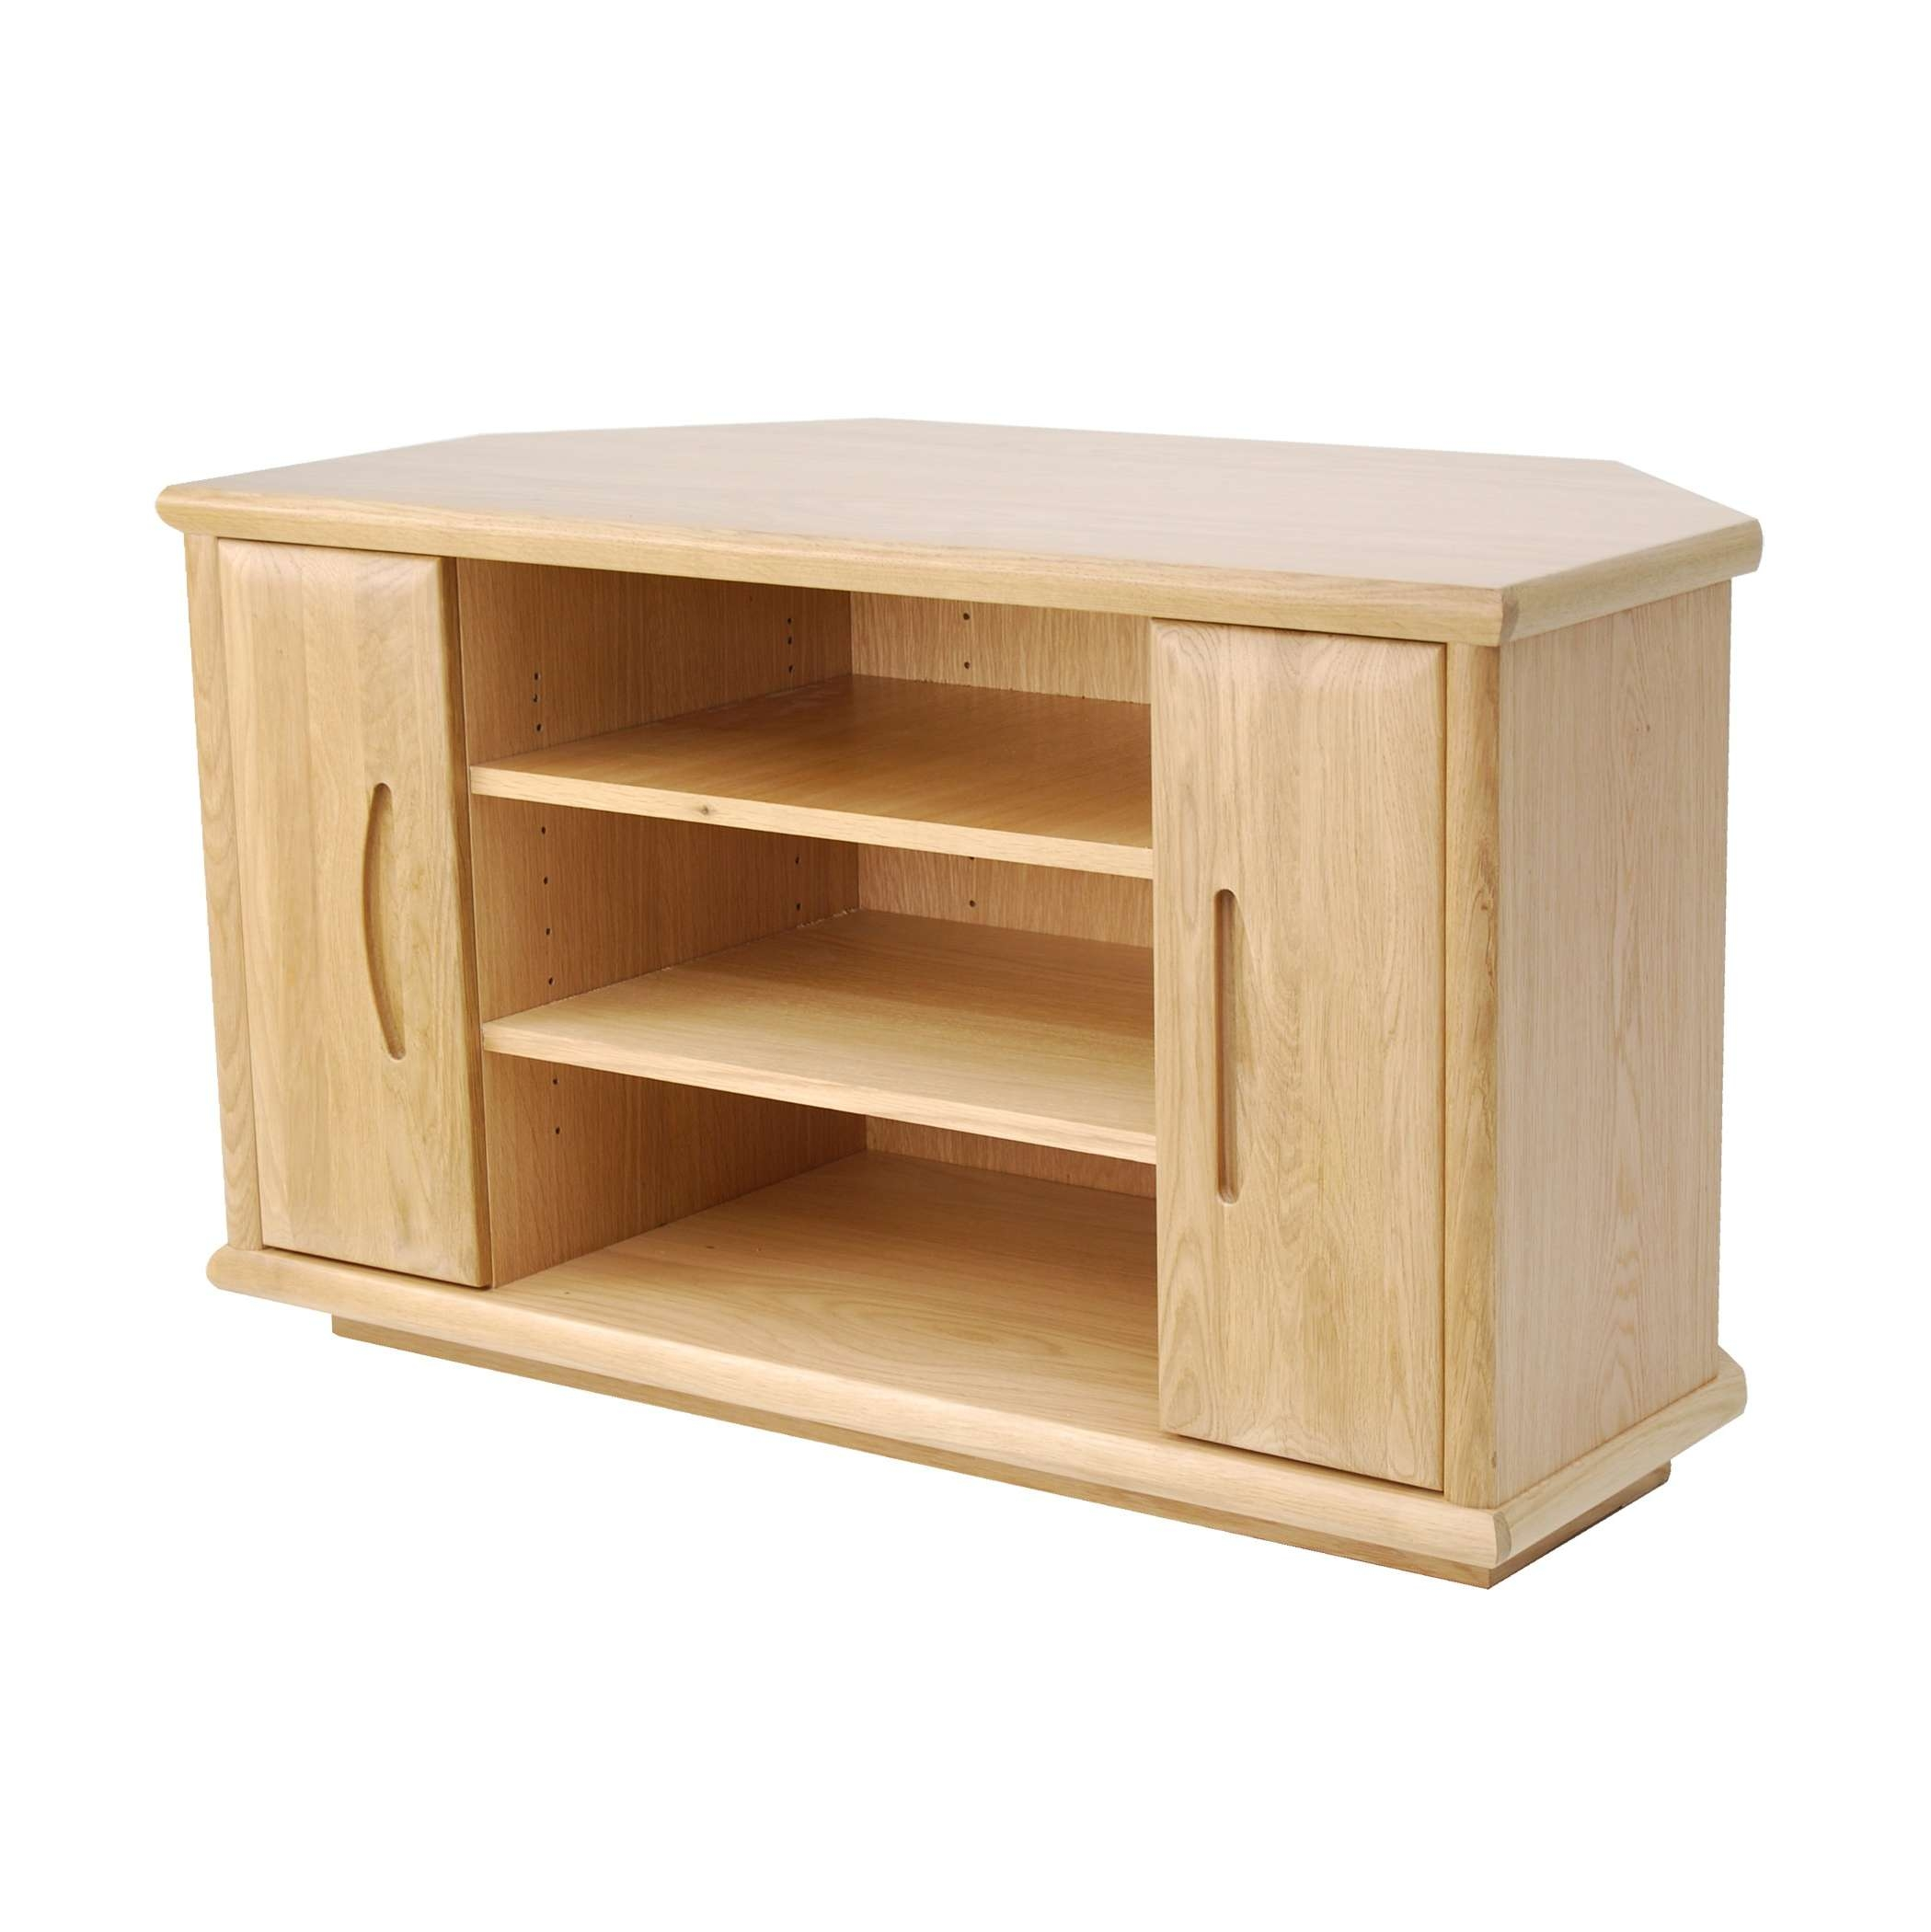 Tv Stands – Living Room | Gola Furniture Uk Throughout Hardwood Tv Stands (View 9 of 15)